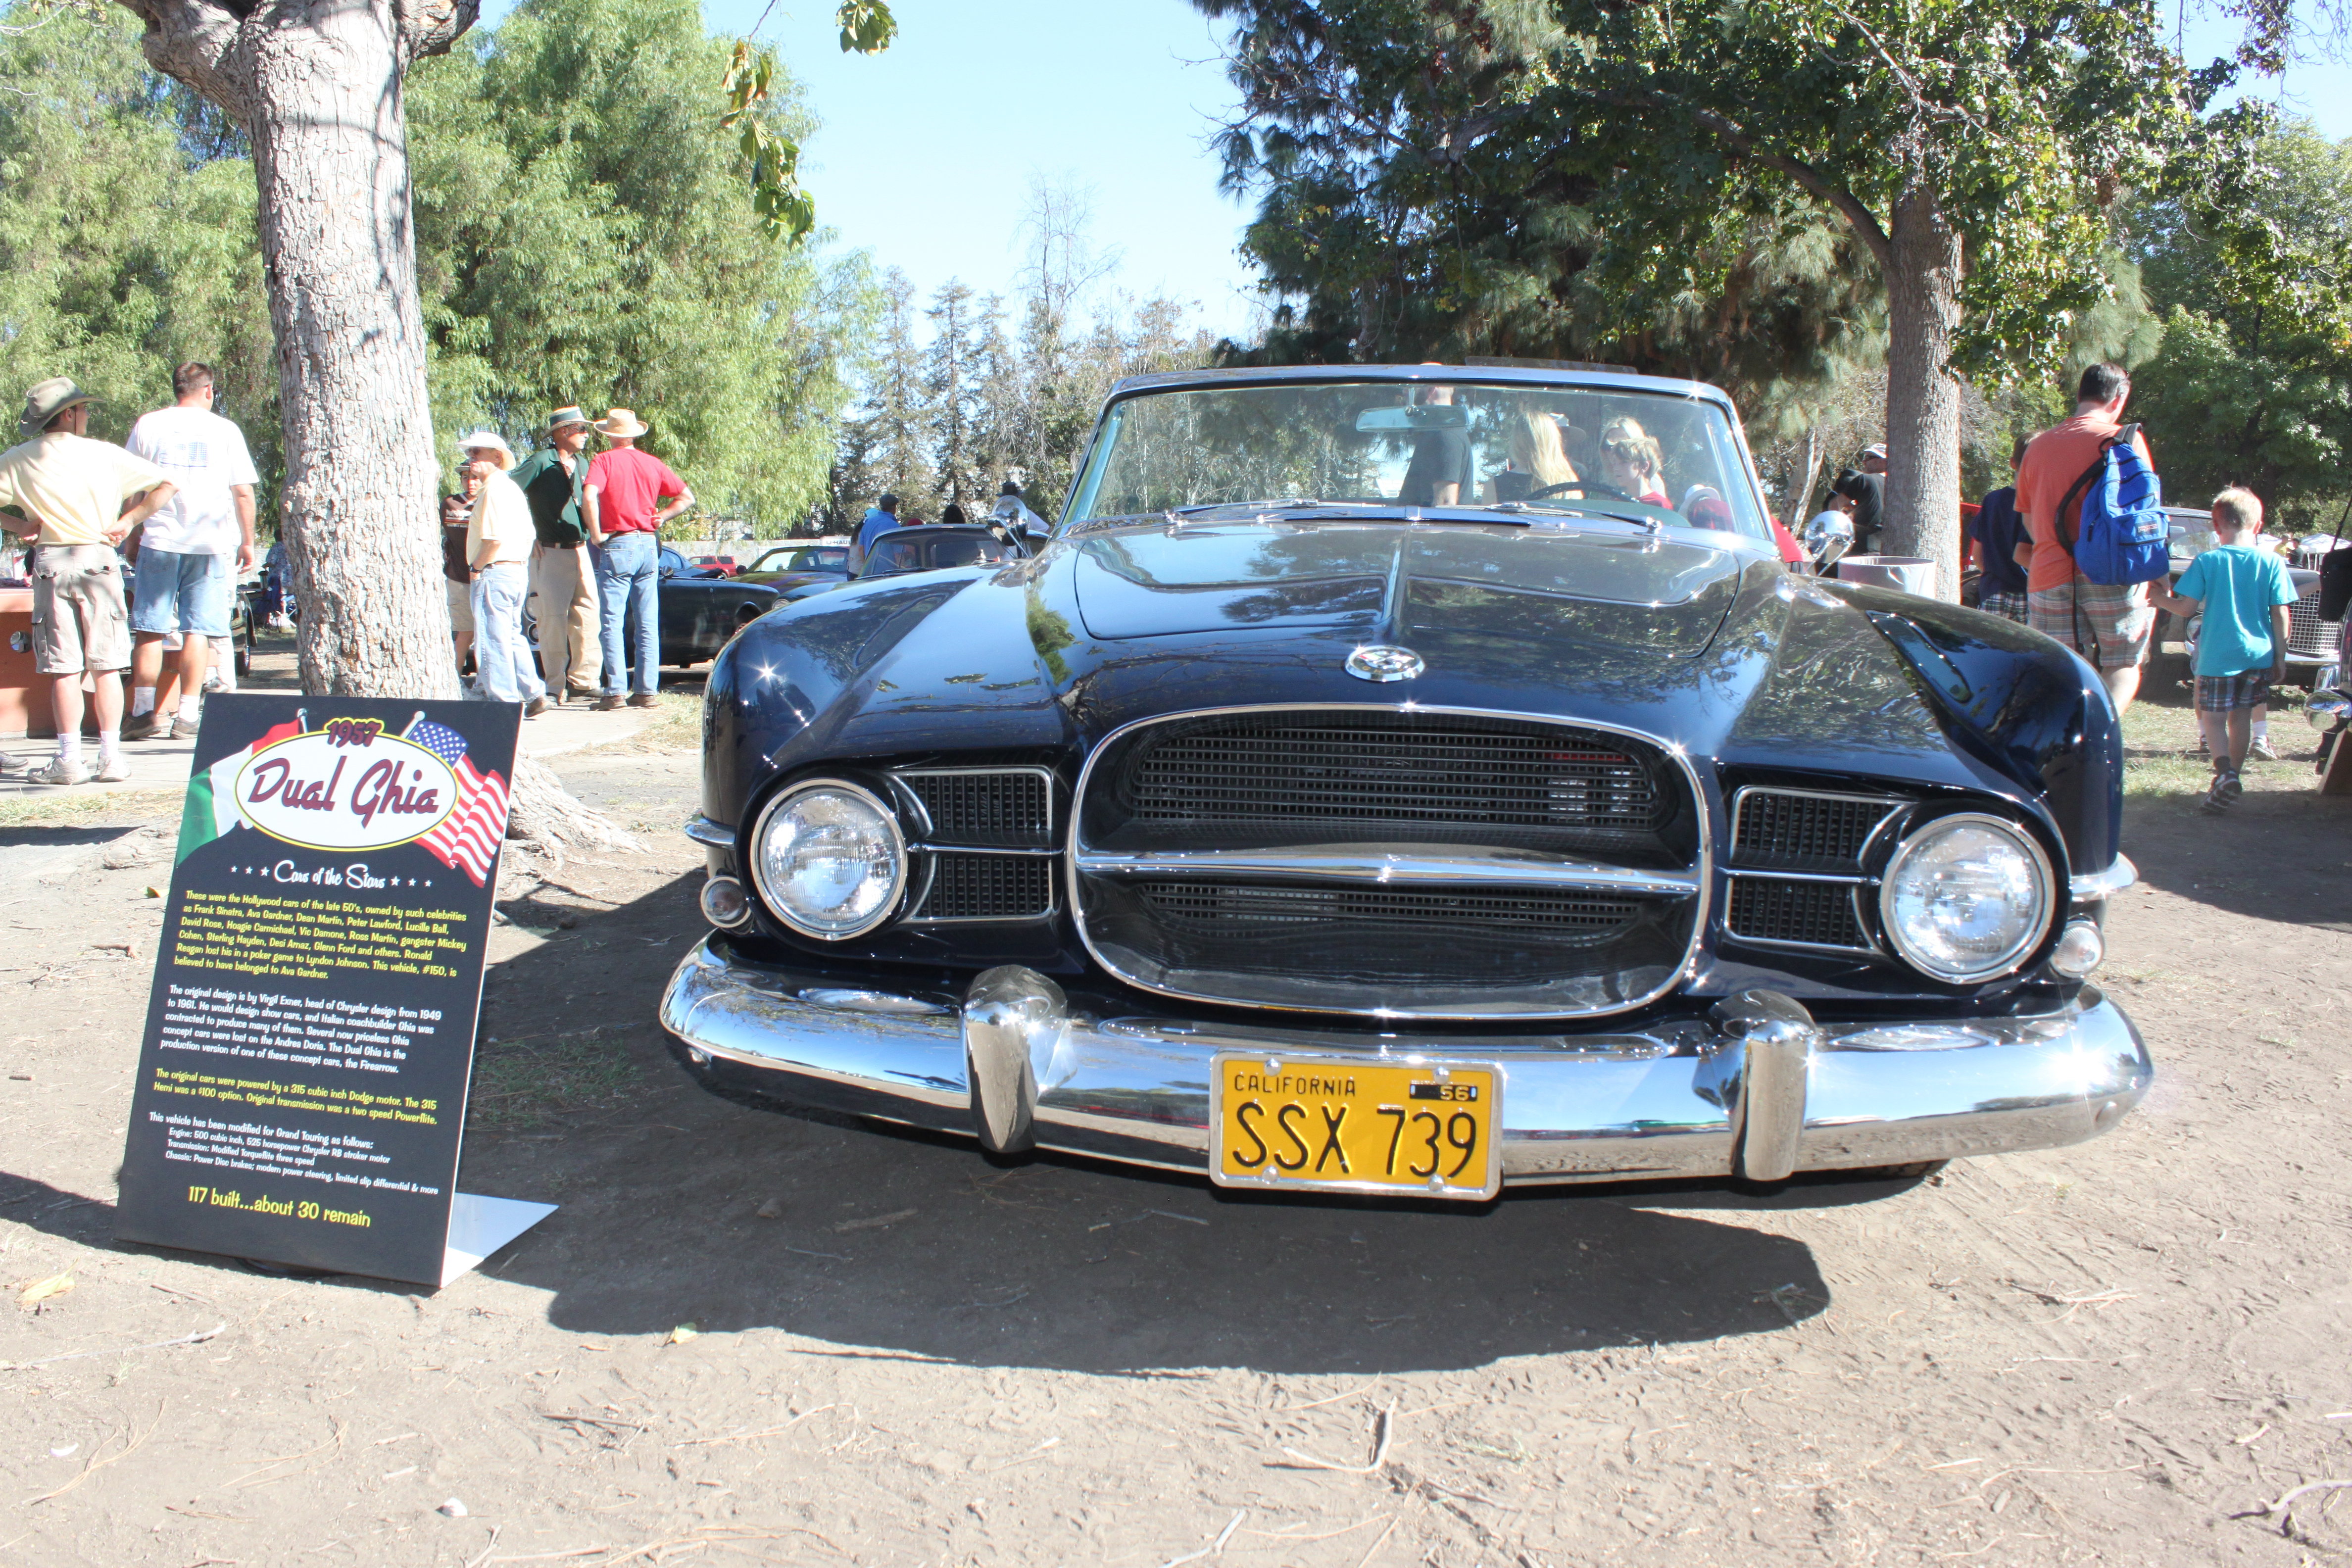 Best of France and Italy Car Show at Woodley Park, Van Nuys, CA